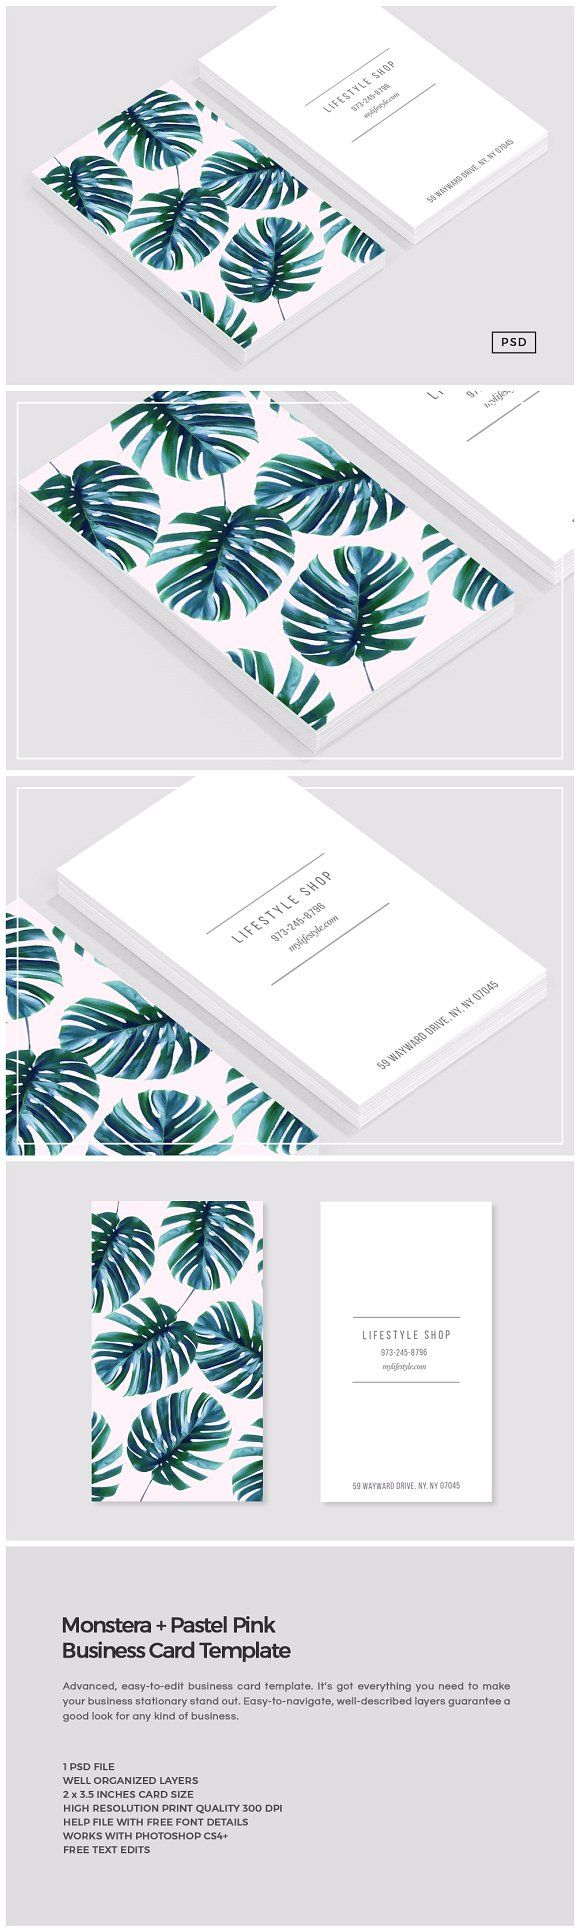 Monstera + Pastel Pink Business Card by The Design Label on @creativemarket